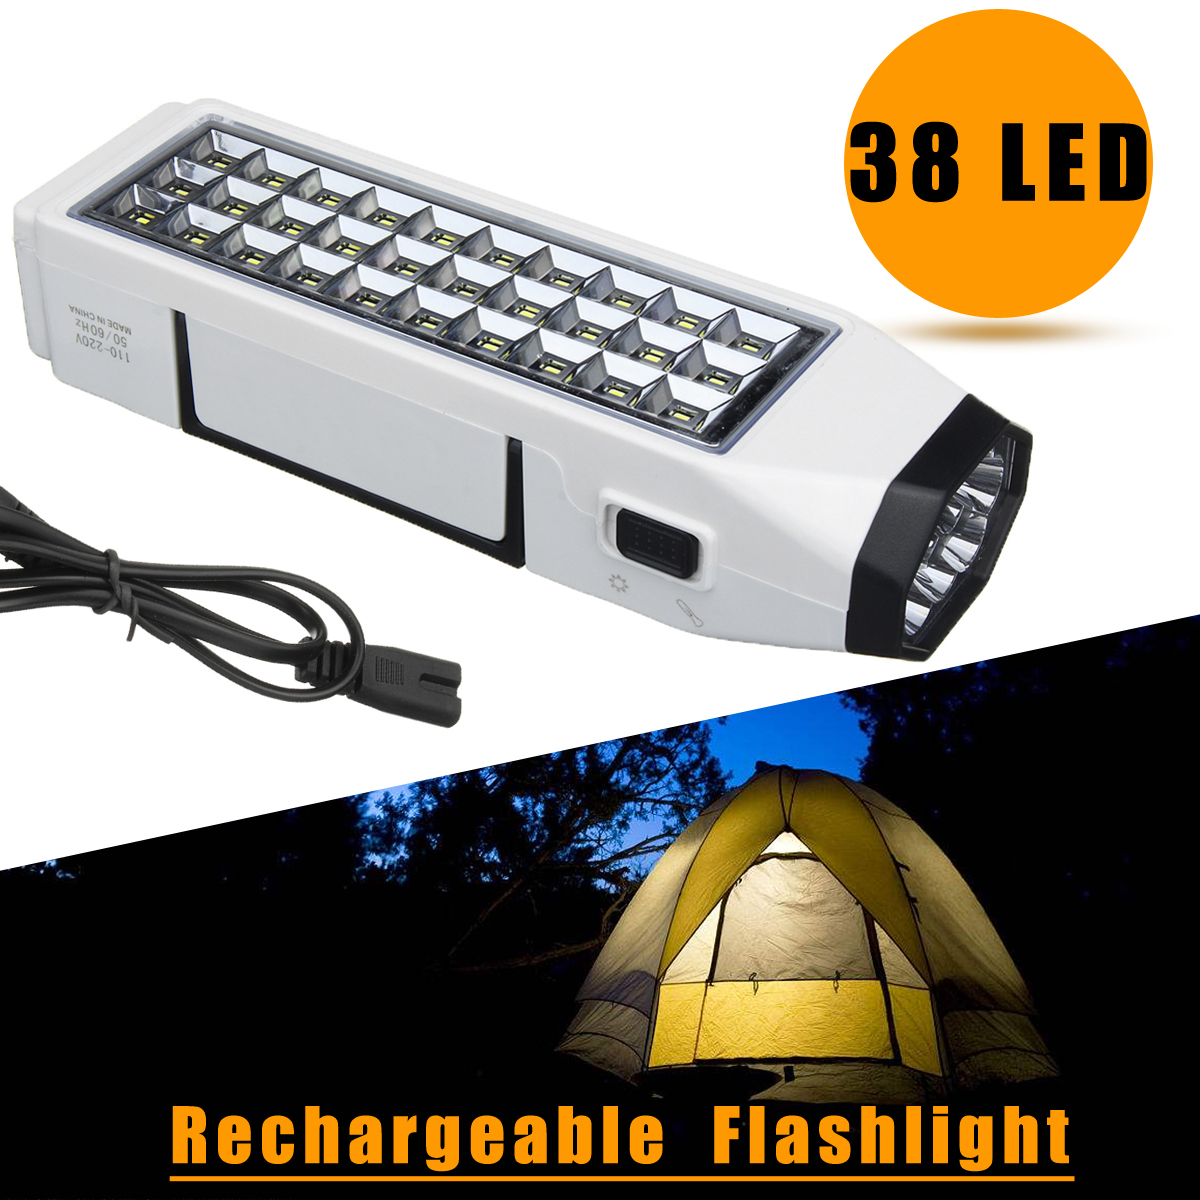 38 LED Flashlight Torch Portable Rechargeable Emergency Light Lamp Home Outdoor Camping 110-220V by